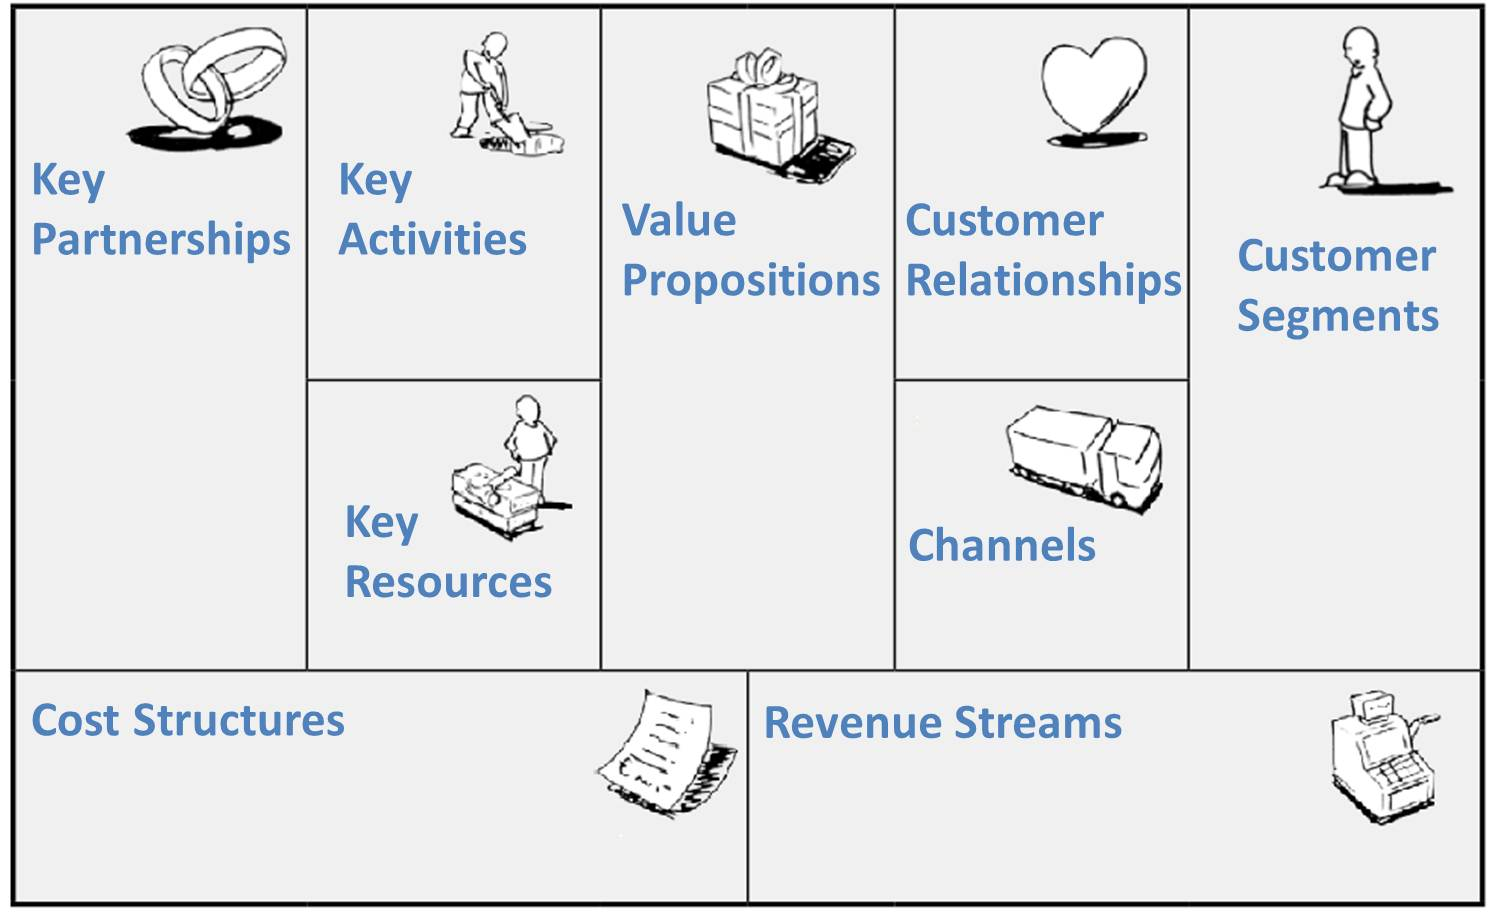 Entrepreneurial Thinking And The Business Model Canvas Colin Newlyn